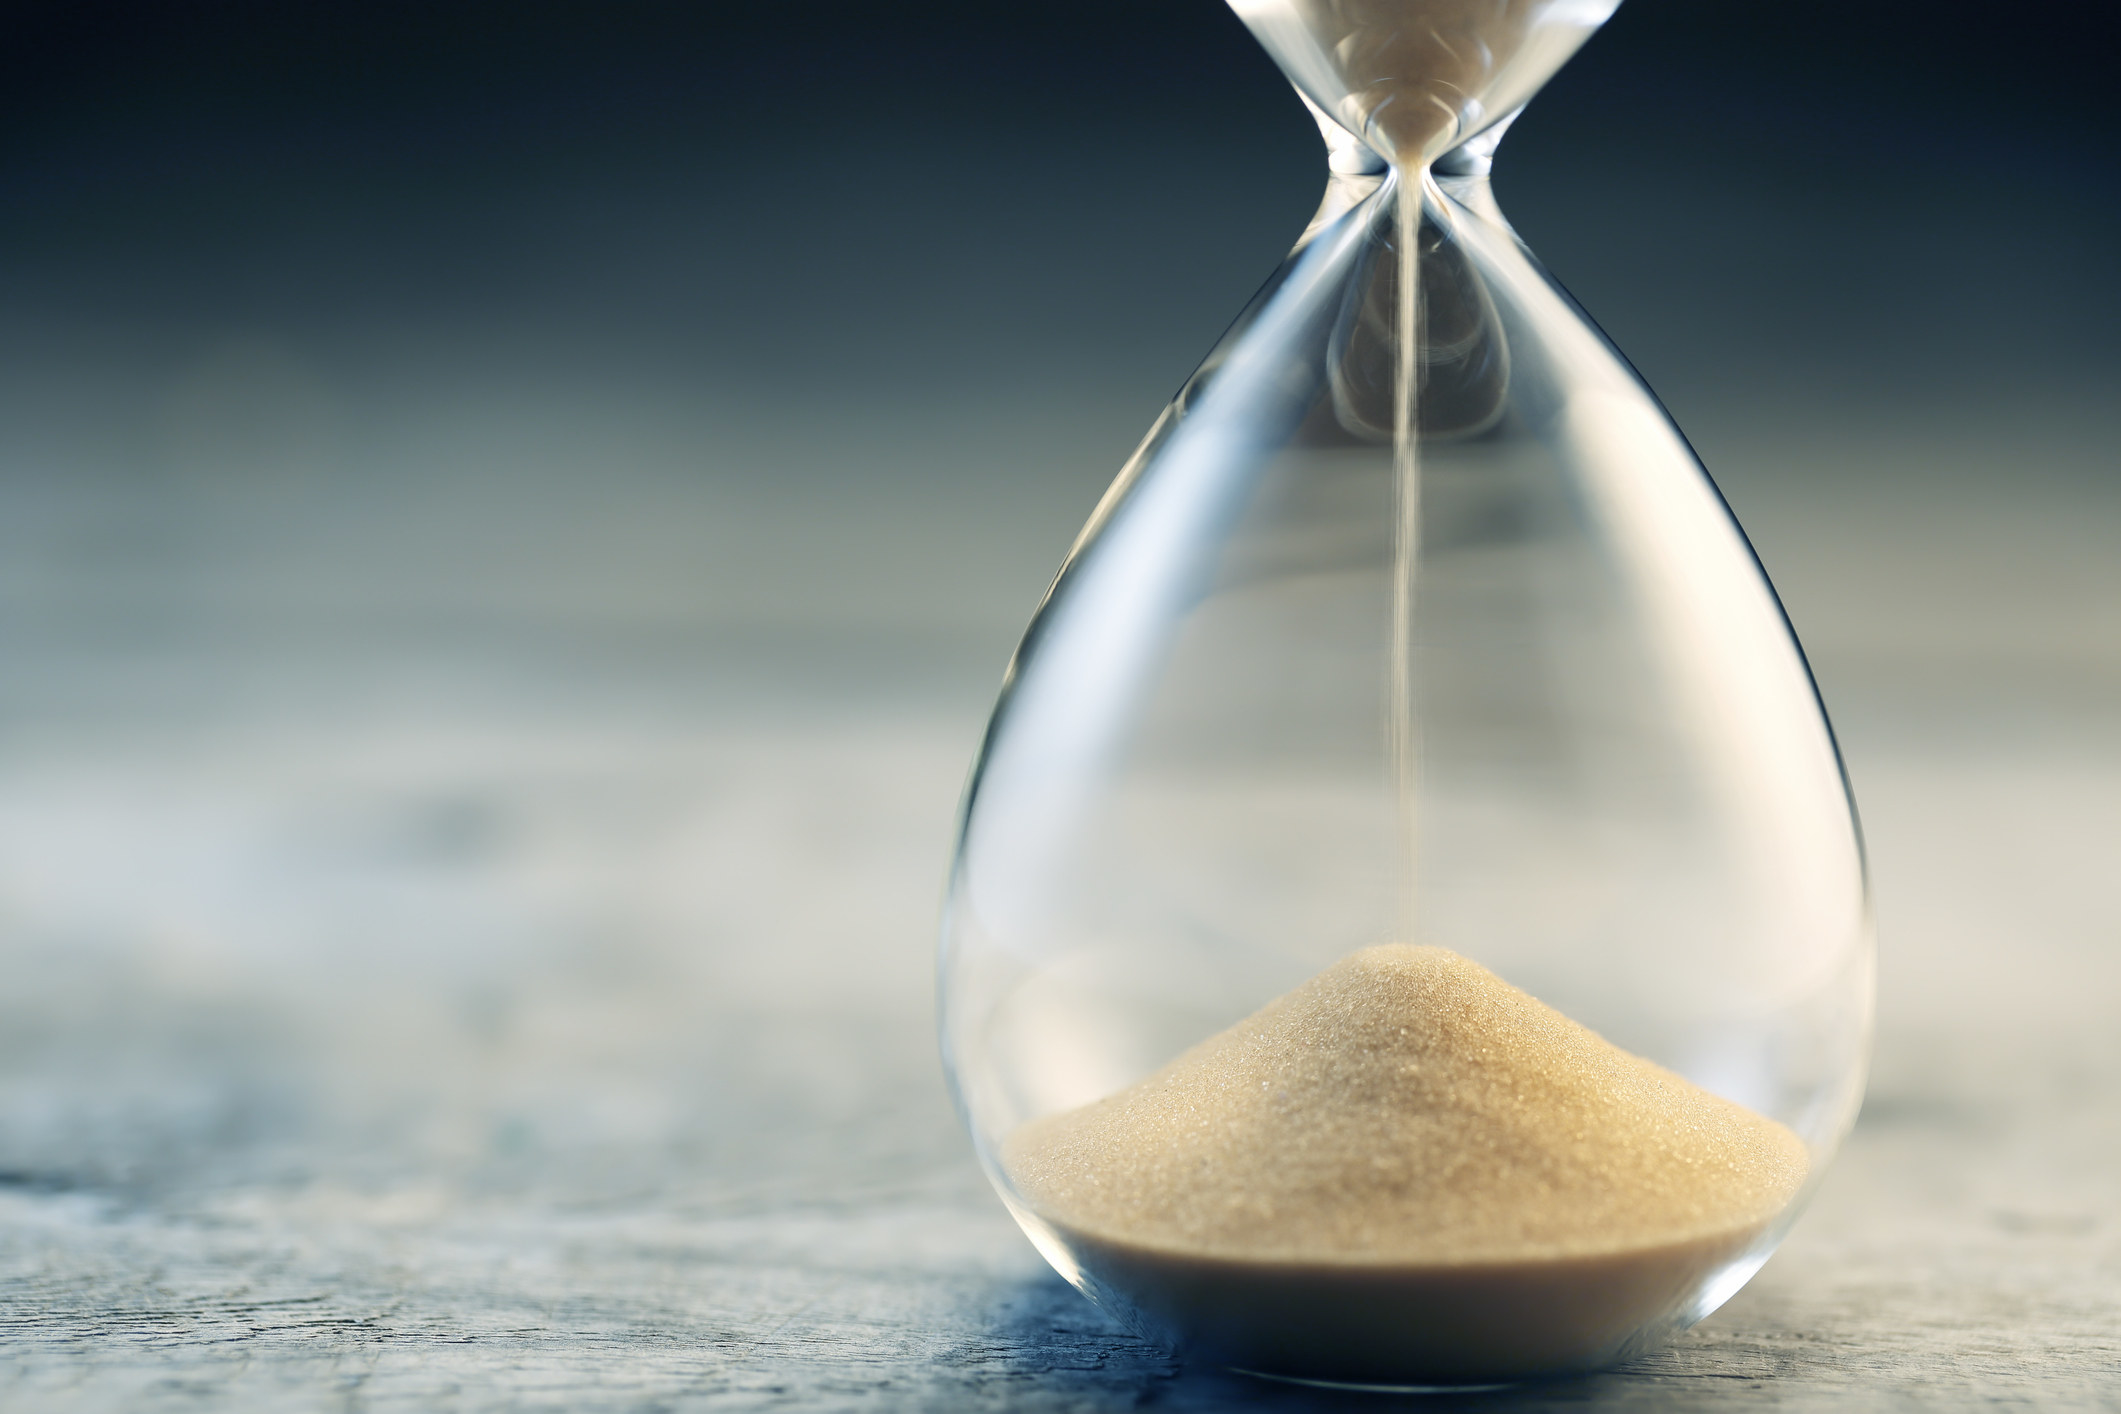 An hourglass of sand pouring slowly